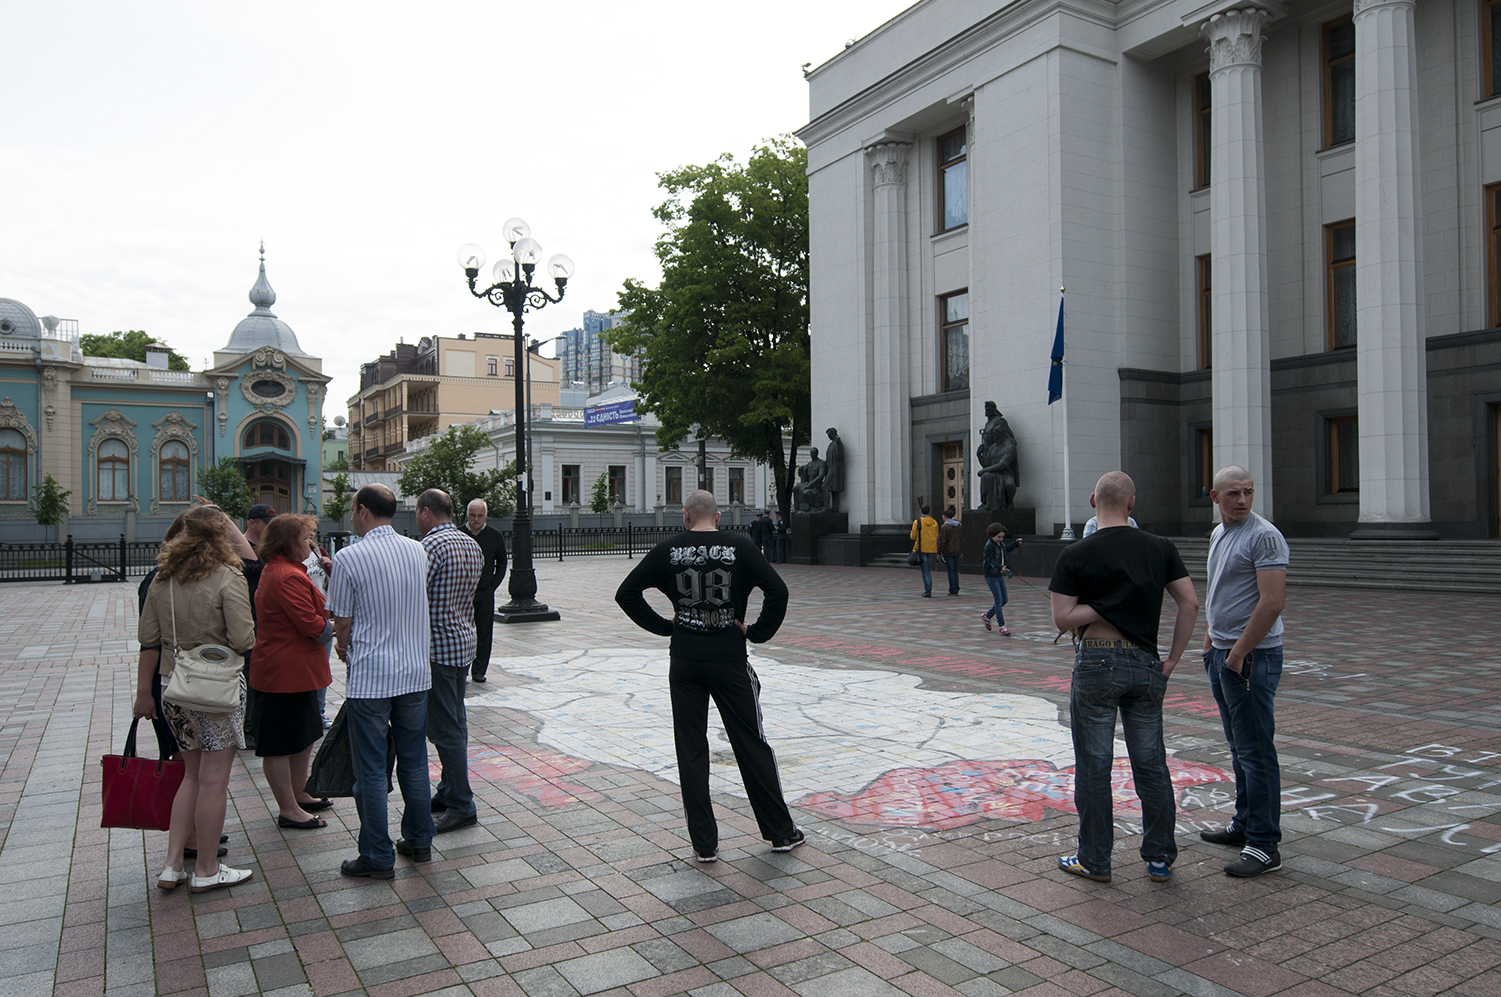 People standing over a map of Ukraine showing the areas under control of the Pro Russian Forces, with the names of three politicians accused of being partially responsible of the current situation